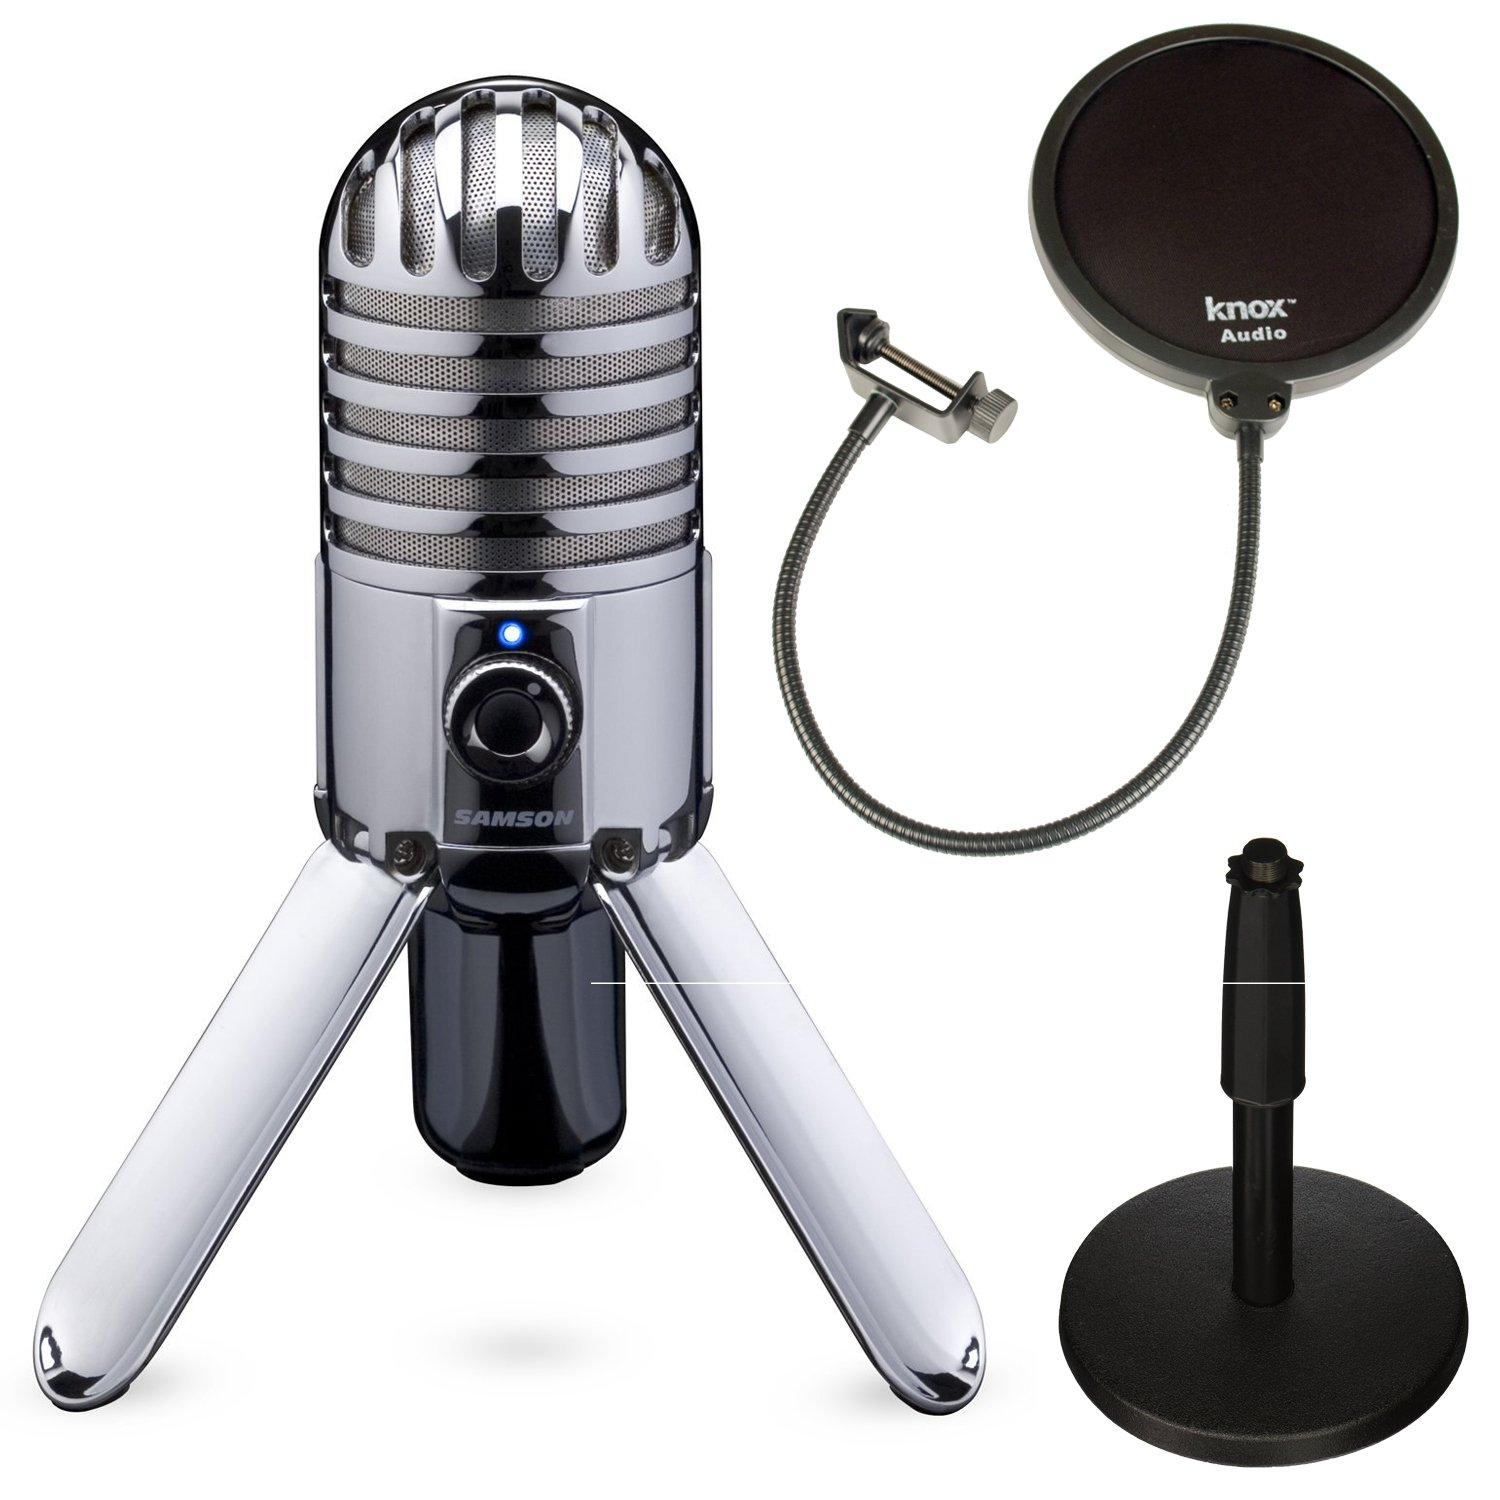 Samson SAMTR Meteor Mic with Adjustable Desk Mic Stand and Pop Filter by Samson